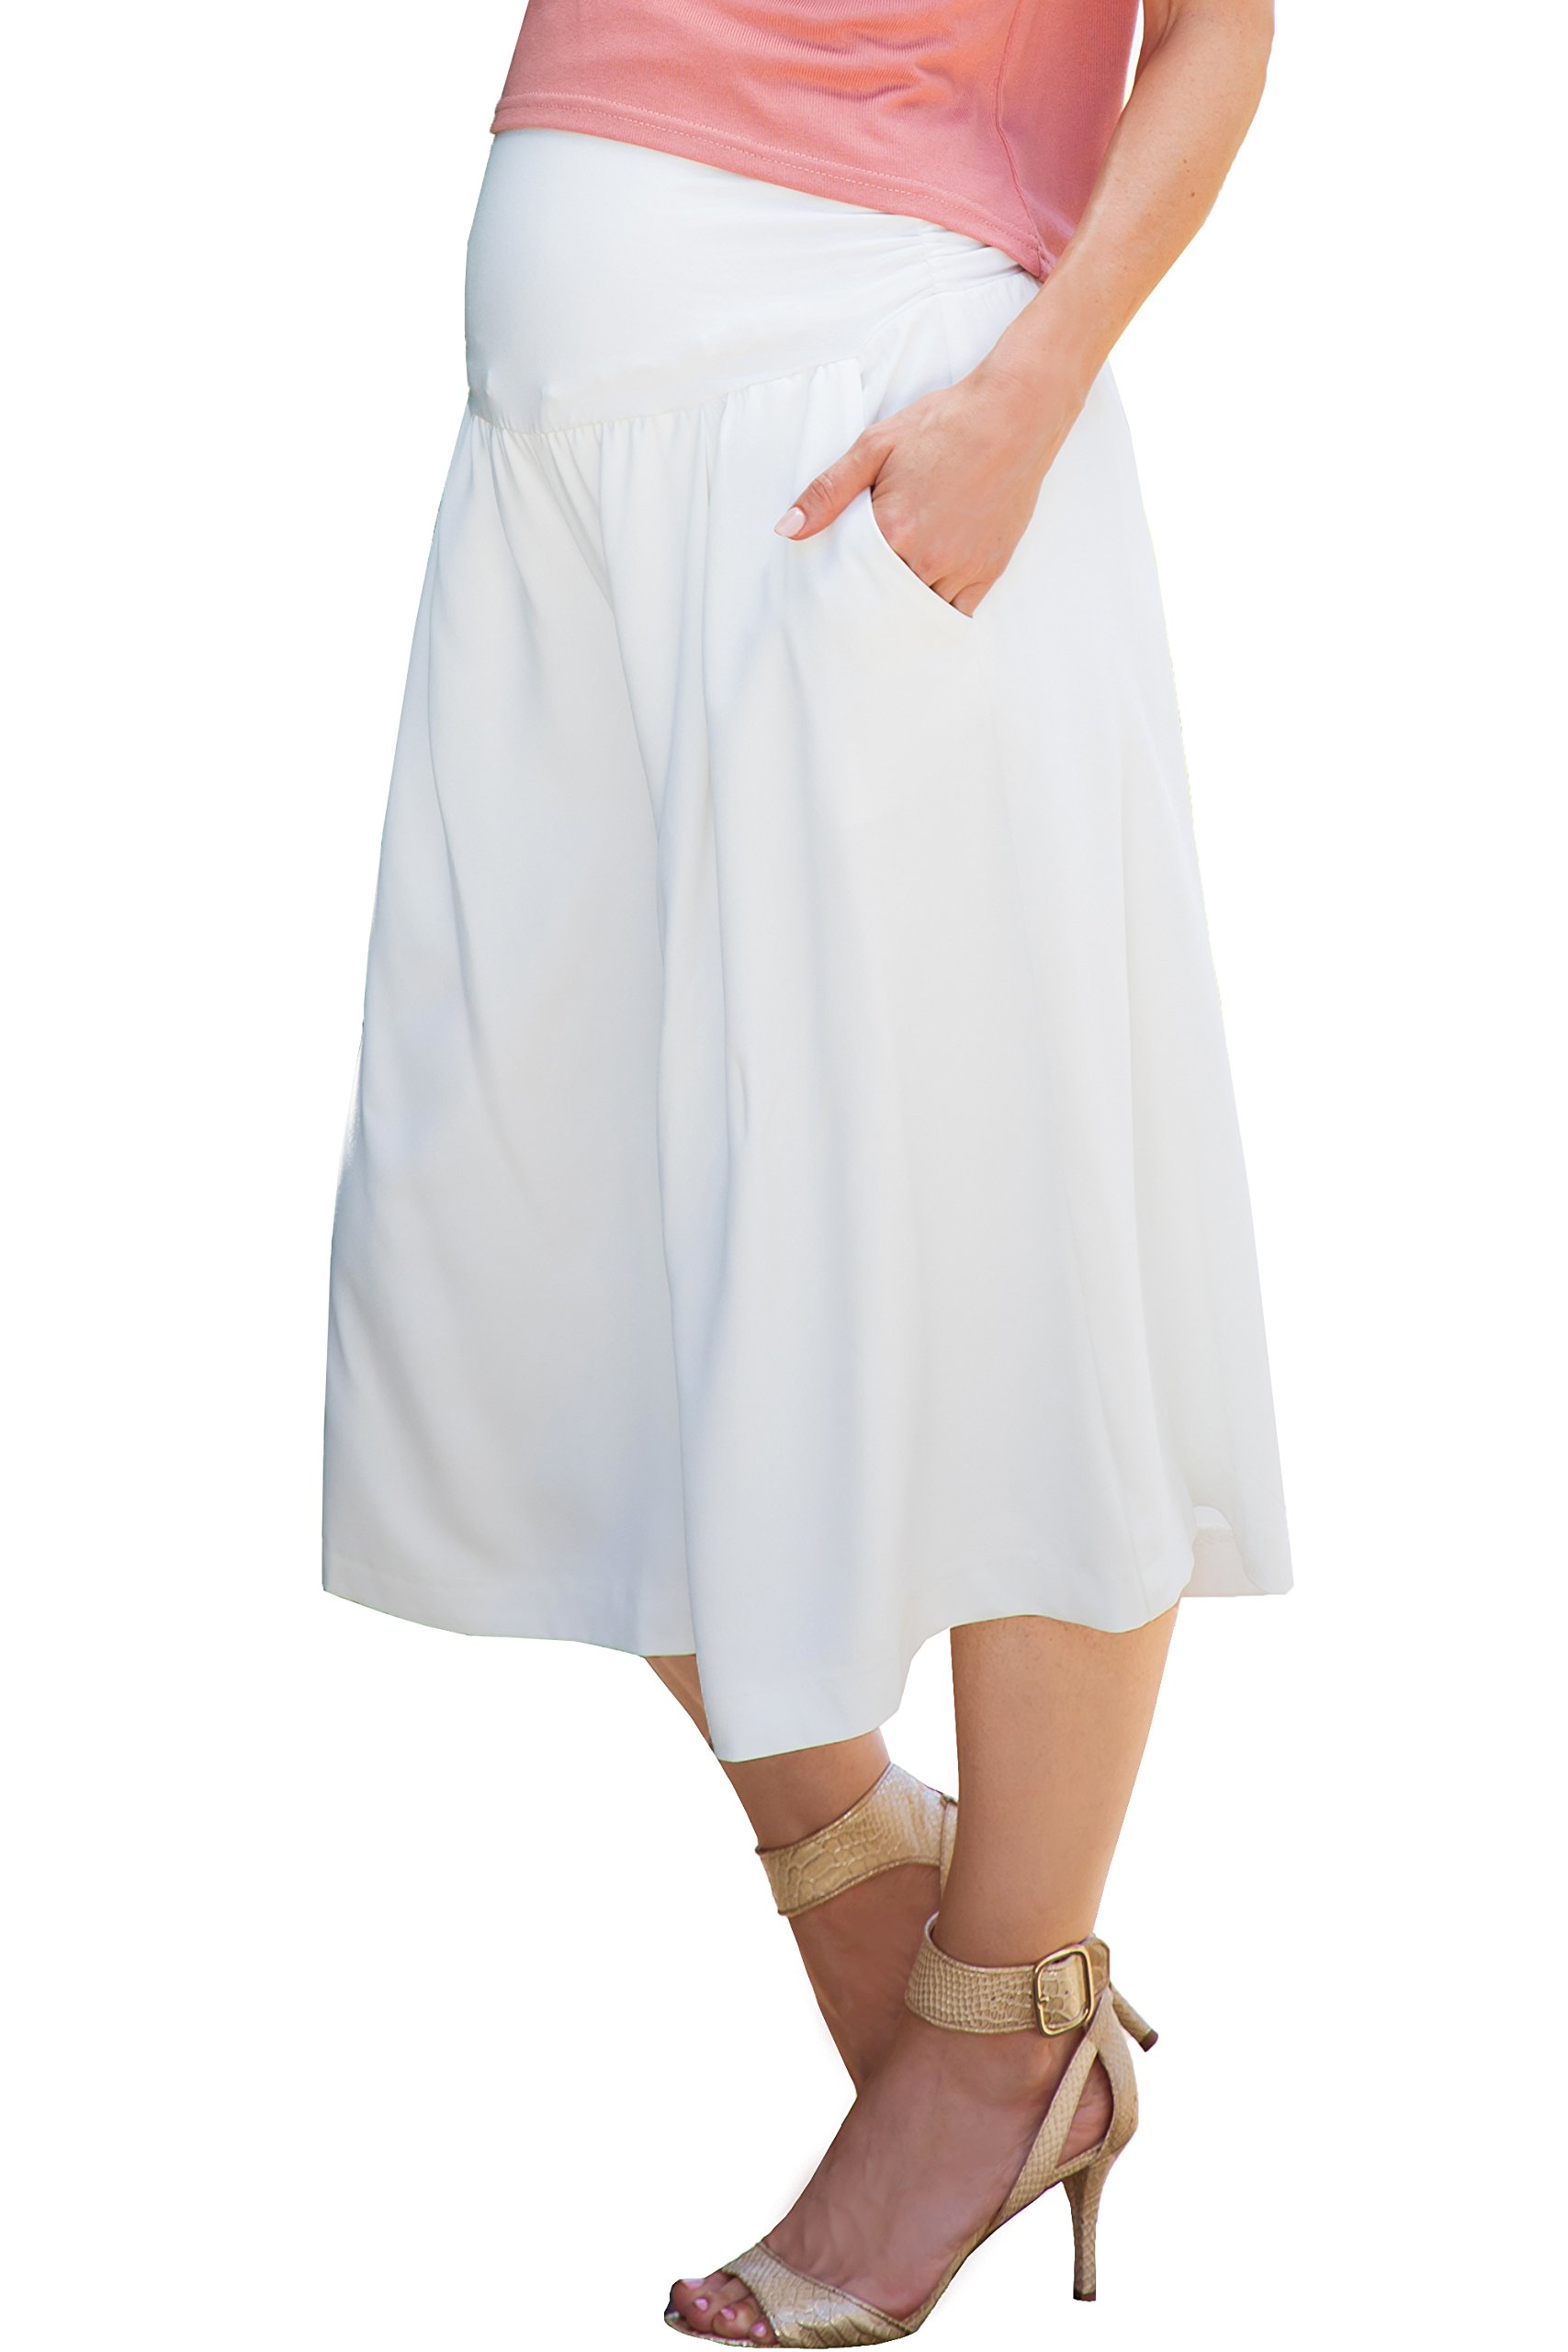 Sweet Mommy Maternity Women's Elastic Wide Leg Culottes Pants White L by Sweet Mommy